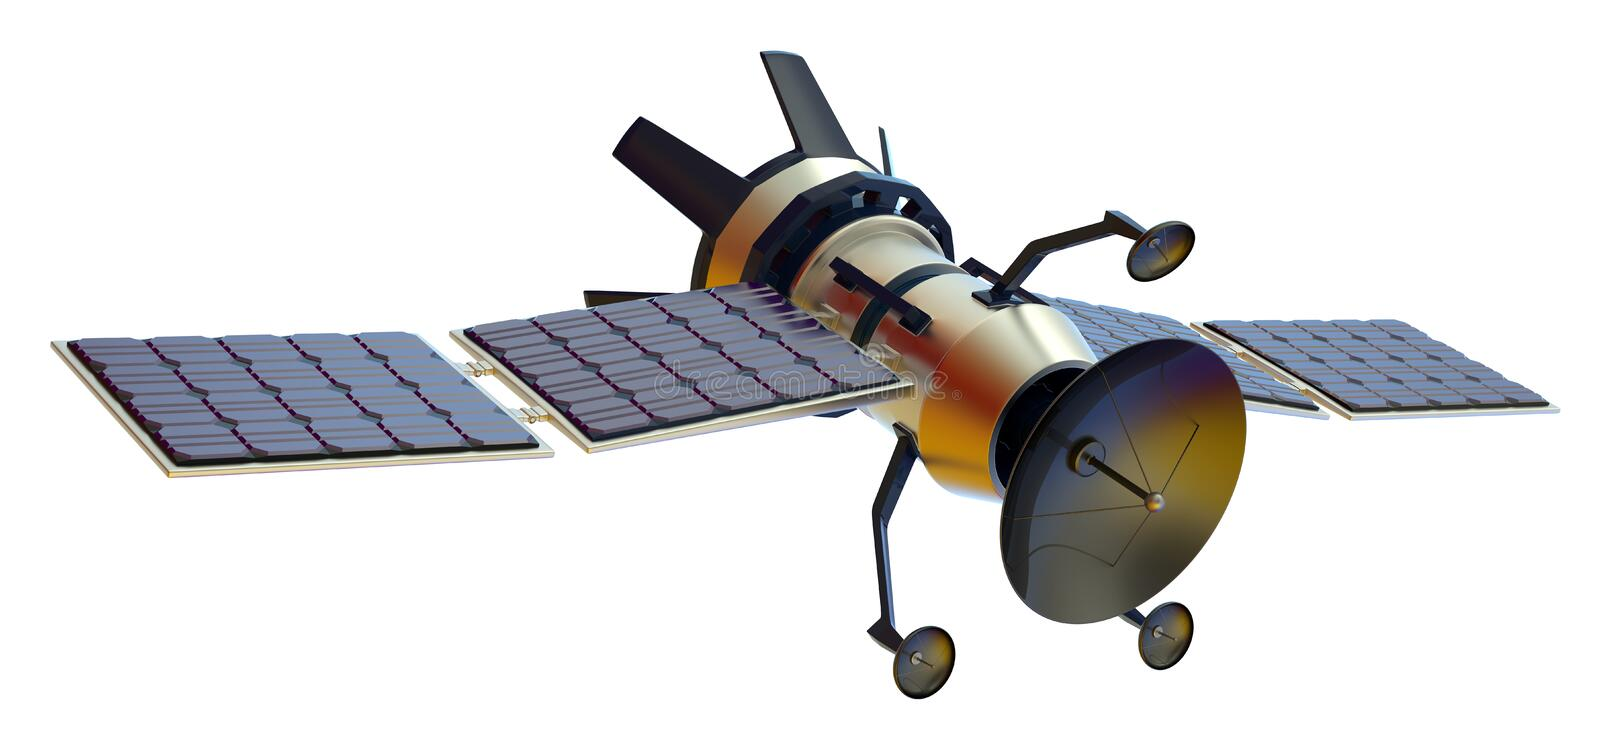 Satellite. 3D model of an artificial satellite royalty free stock photography